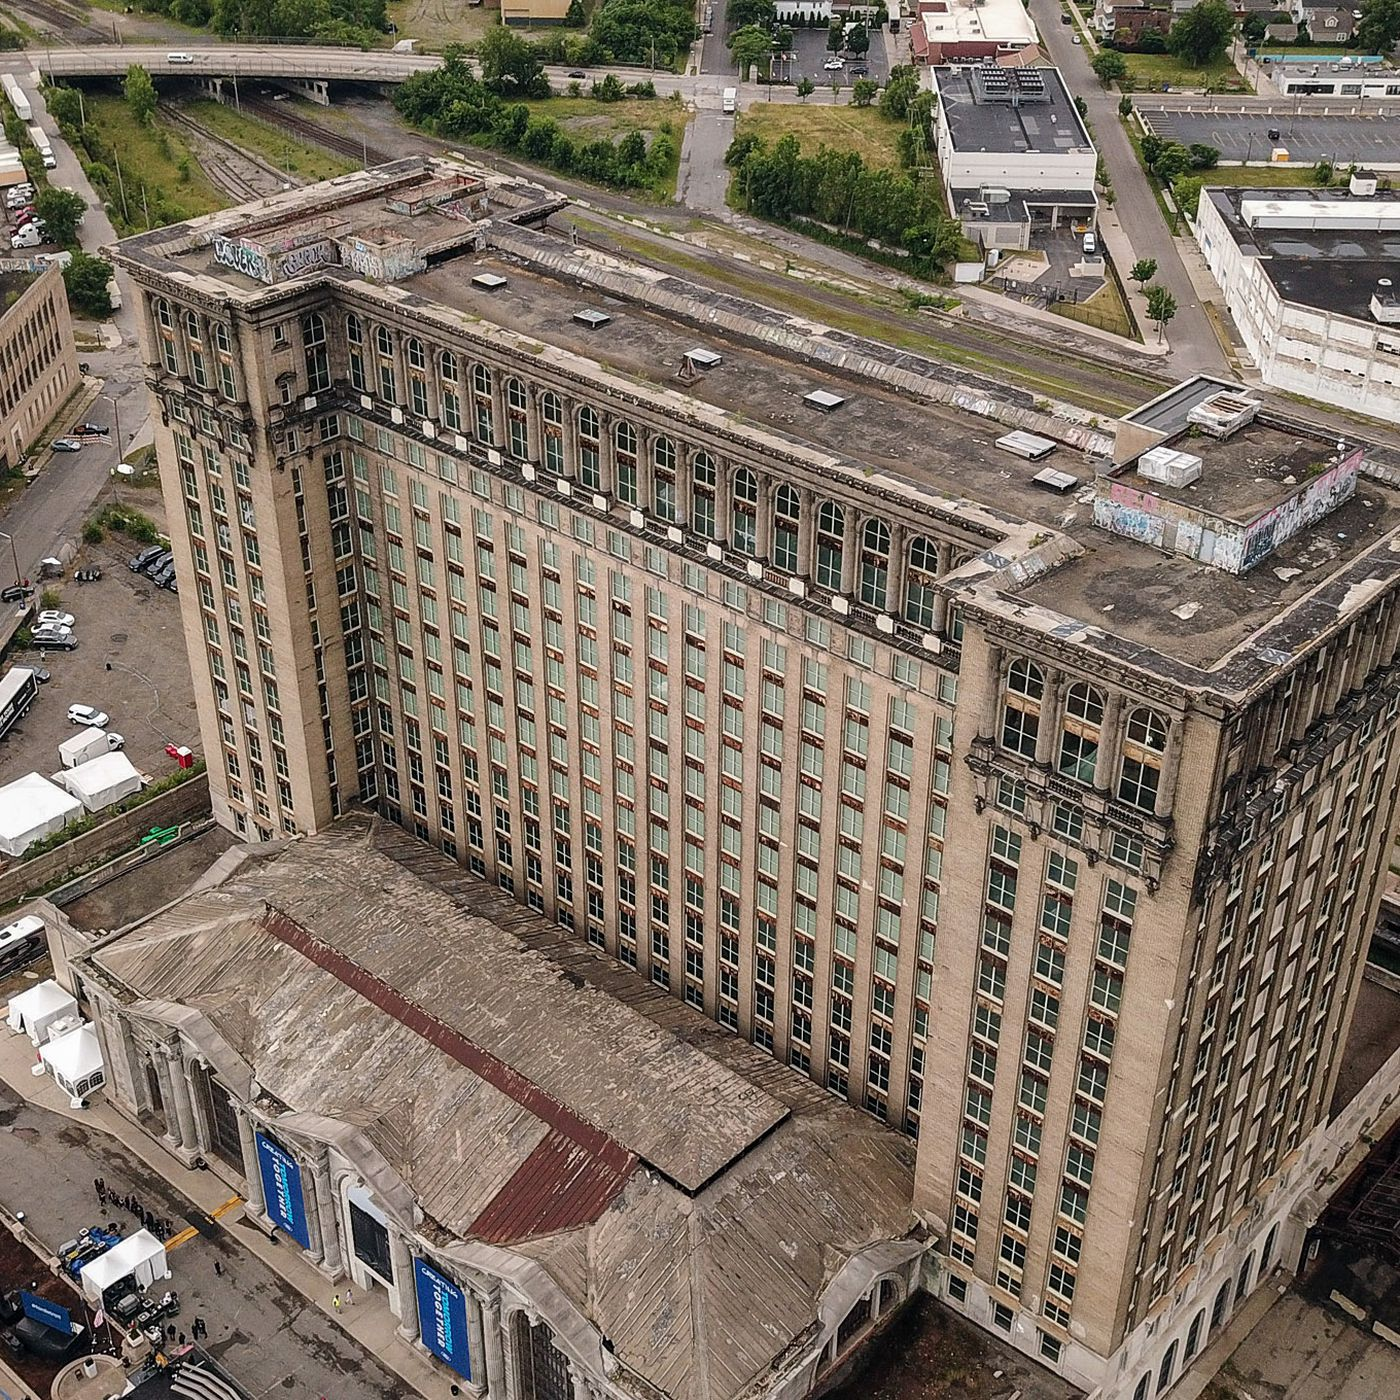 Inside Detroit's crumbling train station that Ford plans to ... on denver union station floor plans, fire station plans, bus station plans, police station plans, station track plans, railroad stations in virginia, warehouse plans, 30th st station plans, railway station plans, fort plans, hunting lodge plans, park plans, penn station plans, stadium plans, castle plans, train plans, windmill plans, ho scale station plans, community center plans, mosque plans,